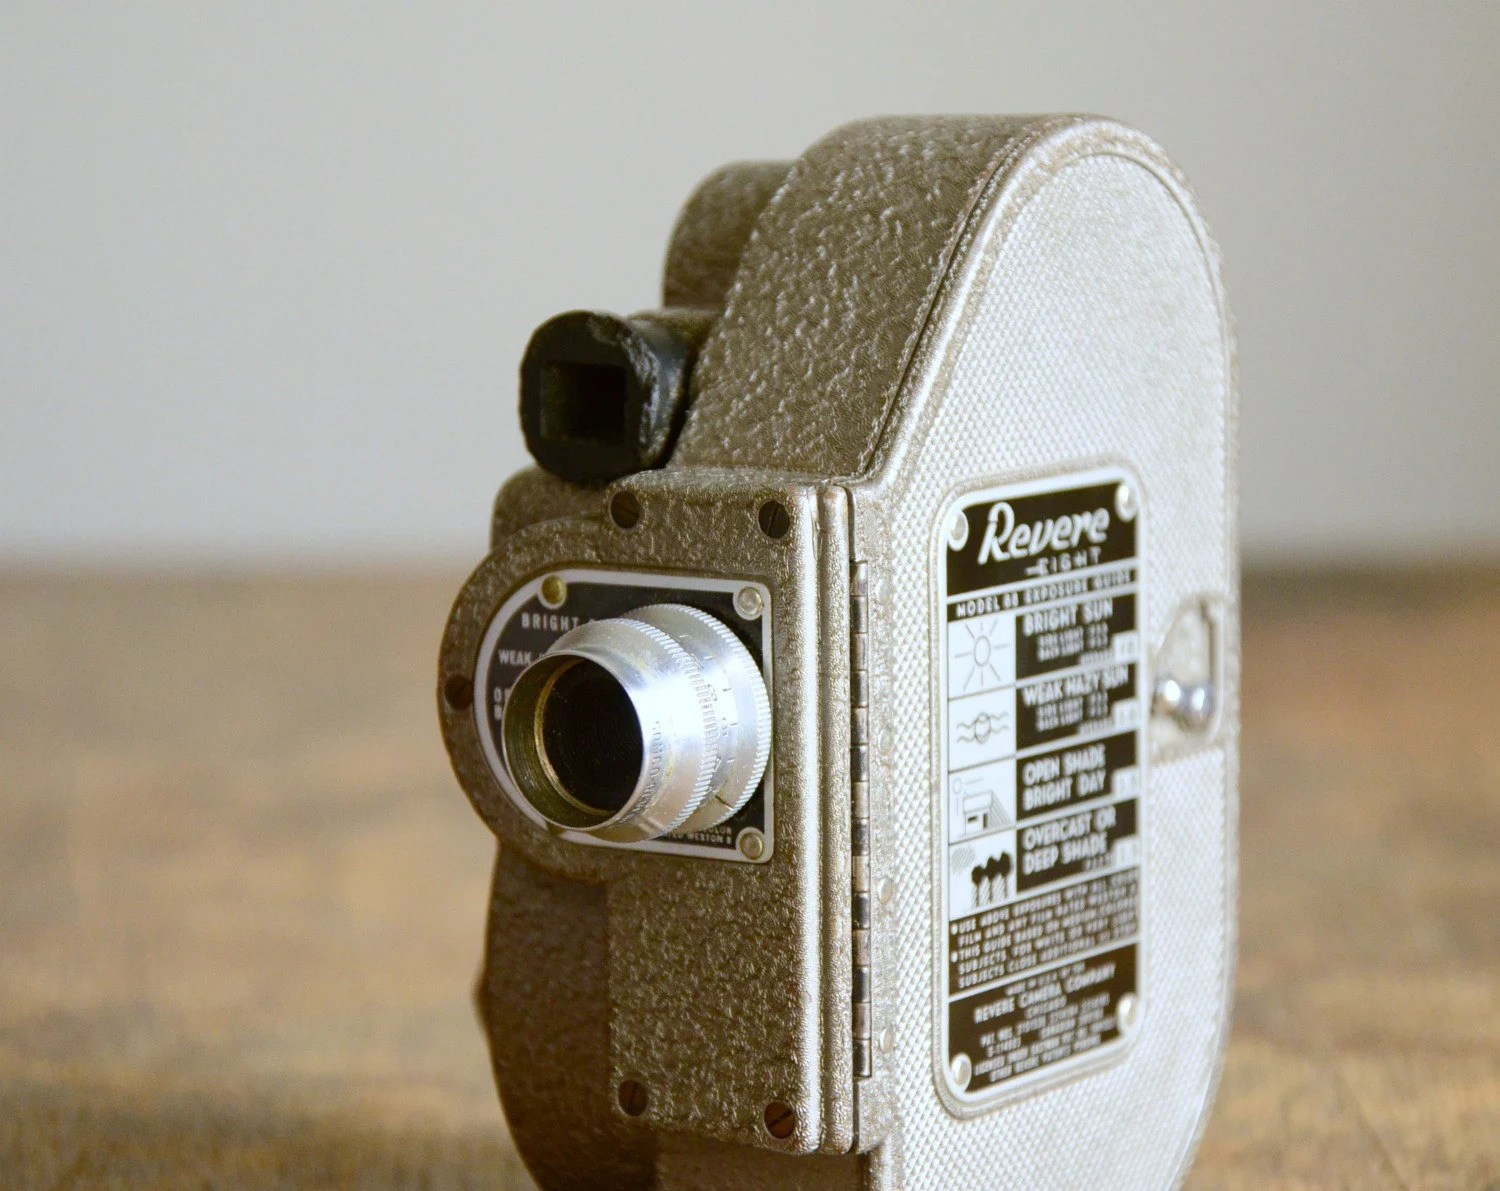 Vintage 8mm Movie Camera .. Revere Eight Model 88